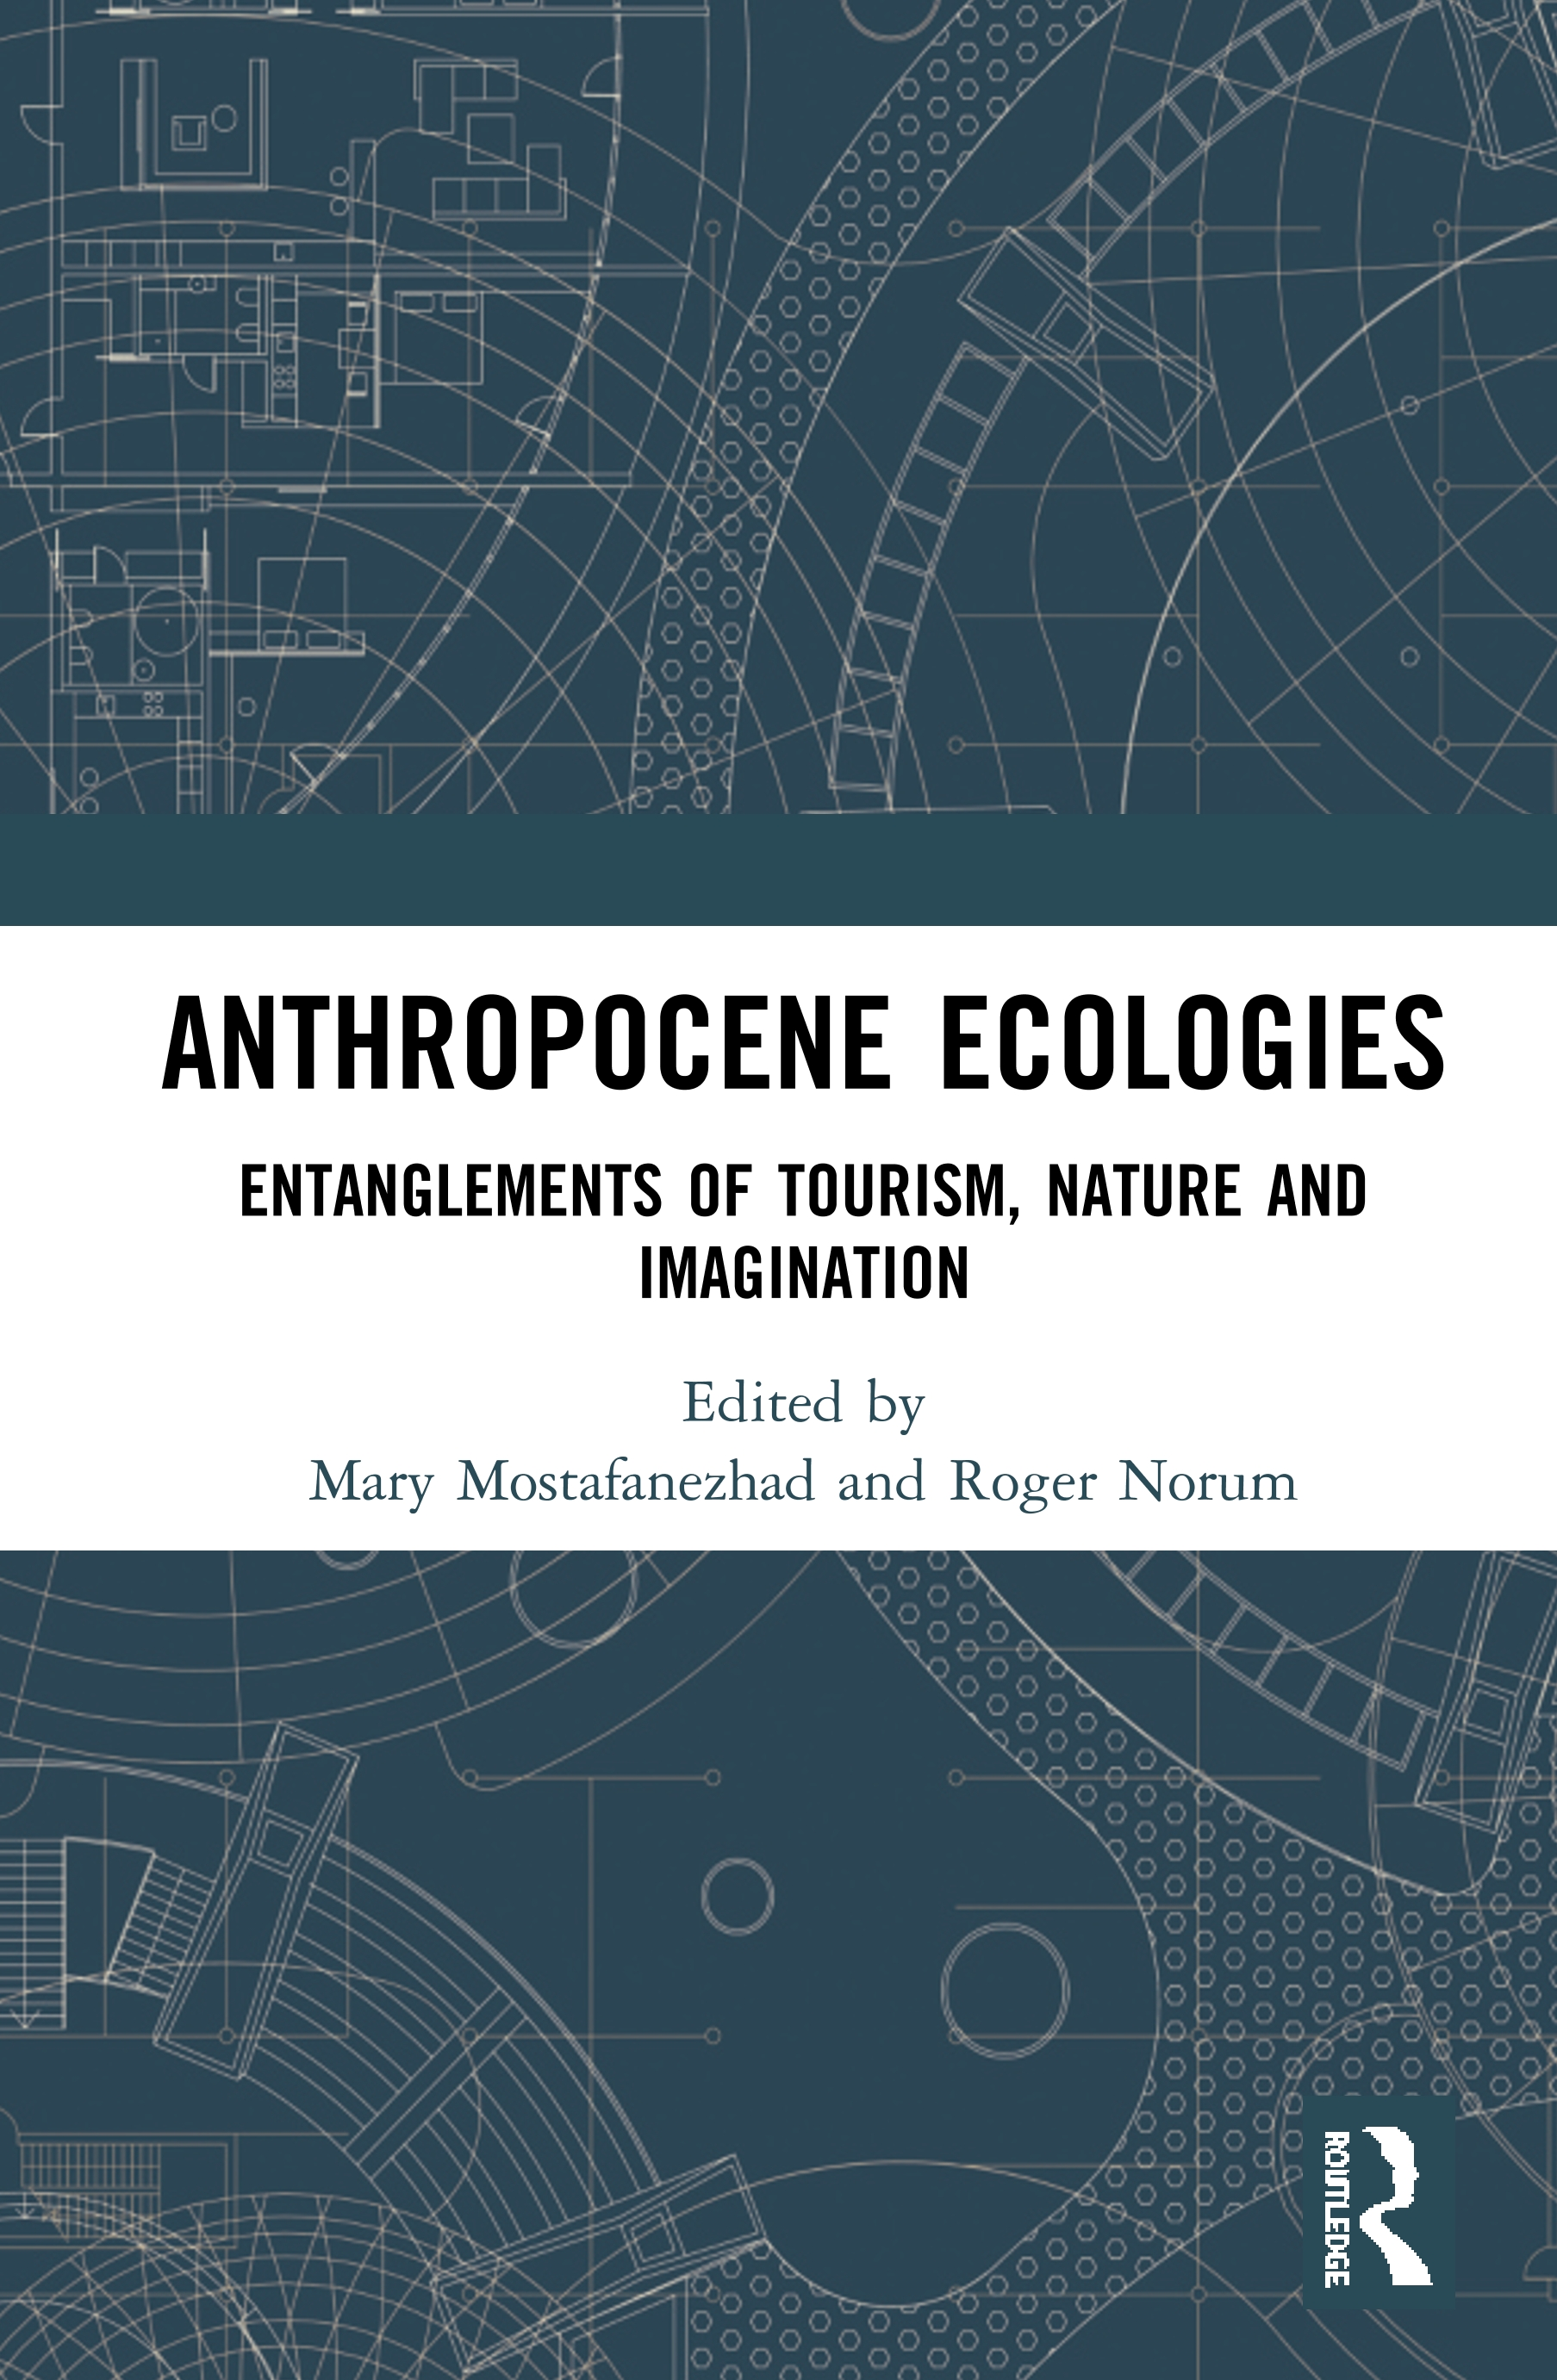 Anthropocene Ecologies: Entanglements of Tourism, Nature and Imagination book cover